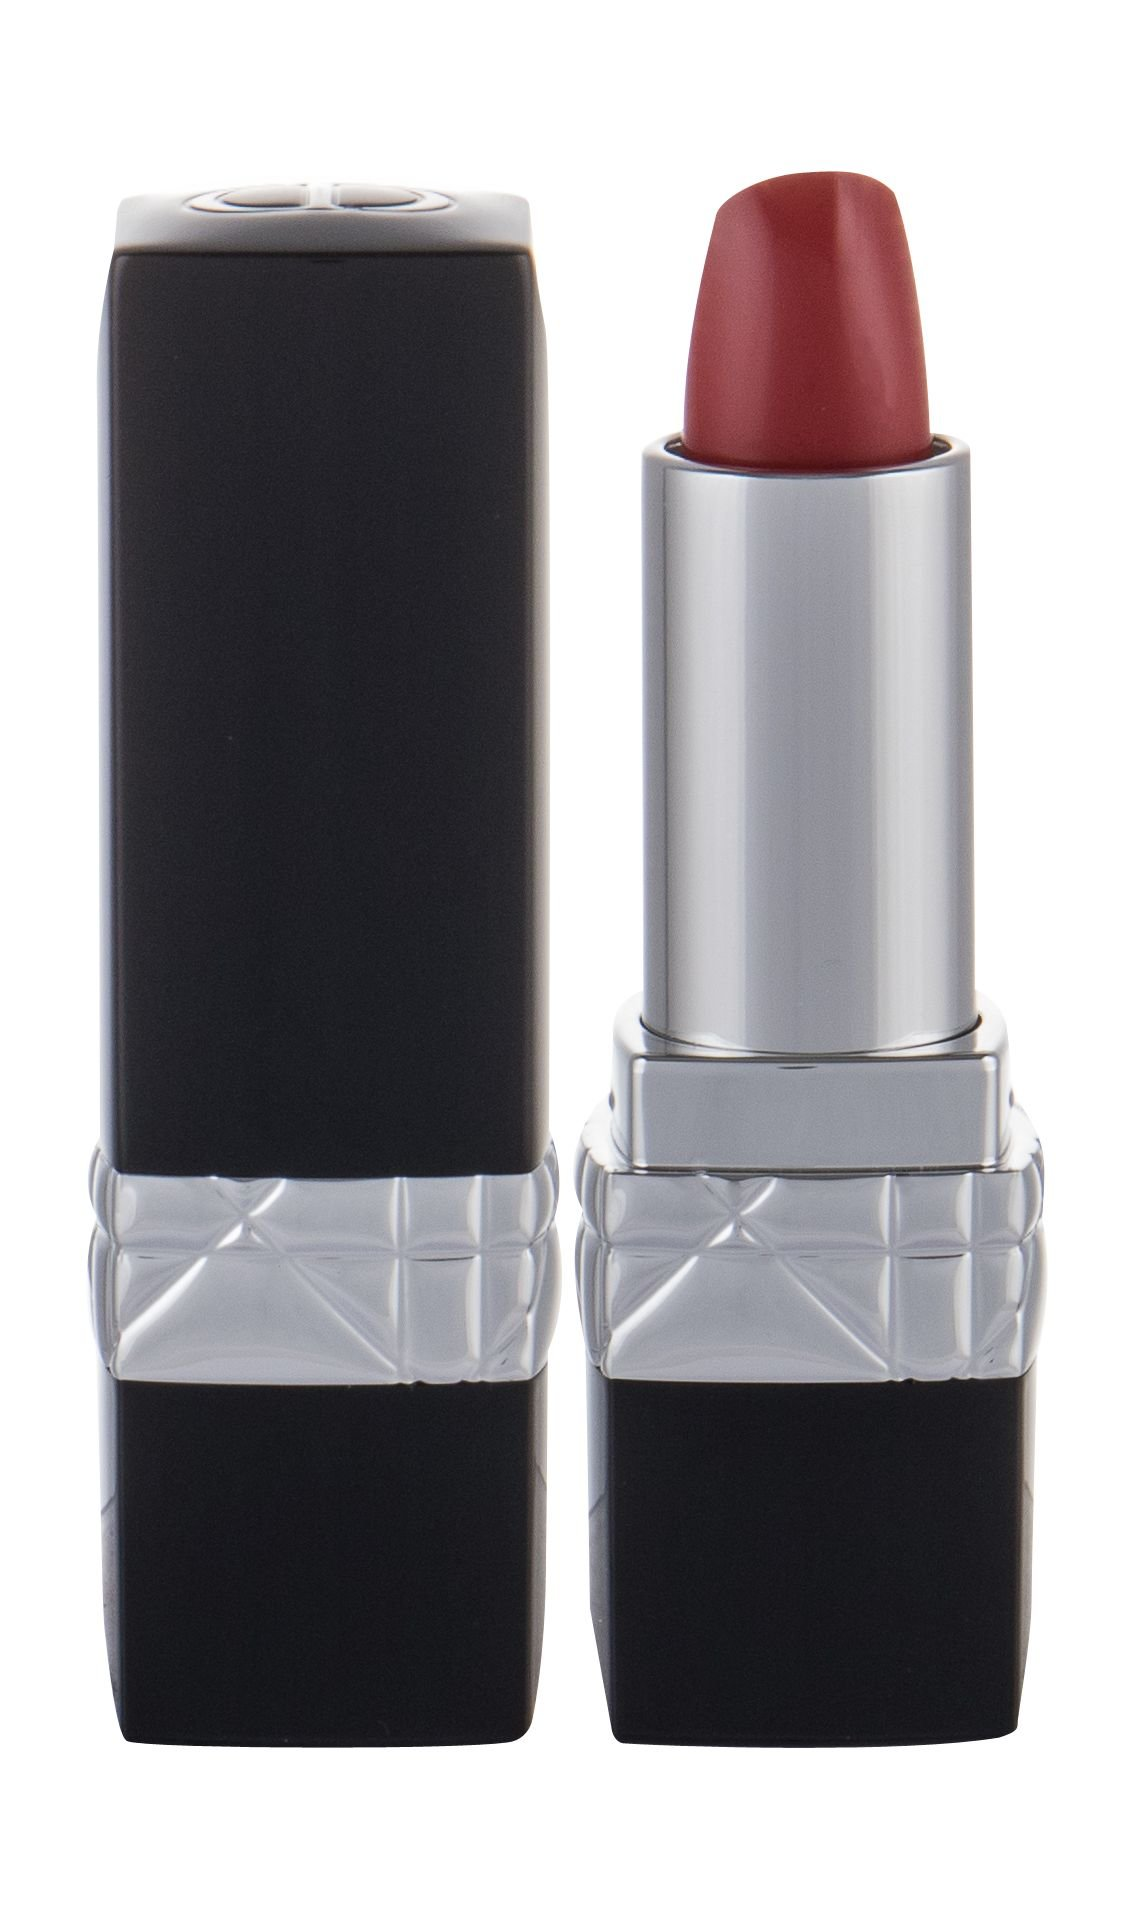 Christian Dior Rouge Dior Couture Colour Comfort & Wear (Odstín 999,Rtěnka, W, 3,5 g)